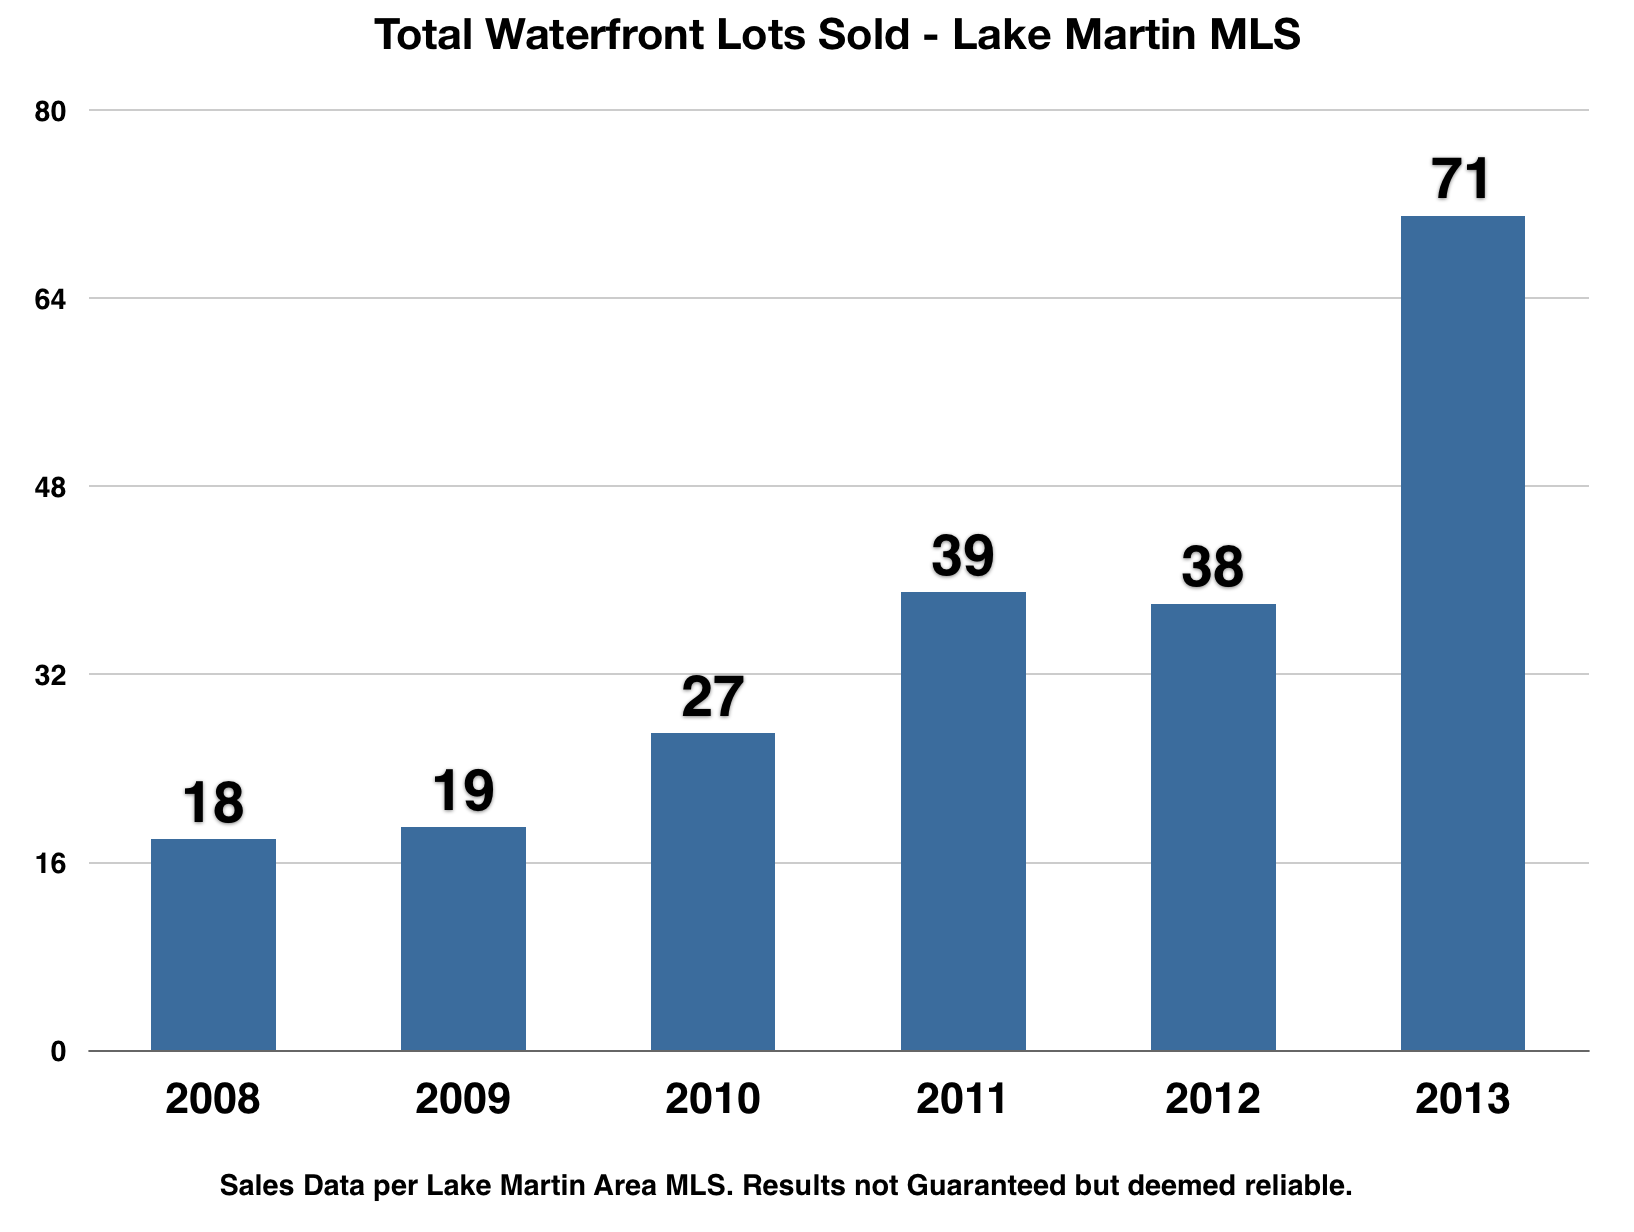 lake martin waterfront lot sales 2013